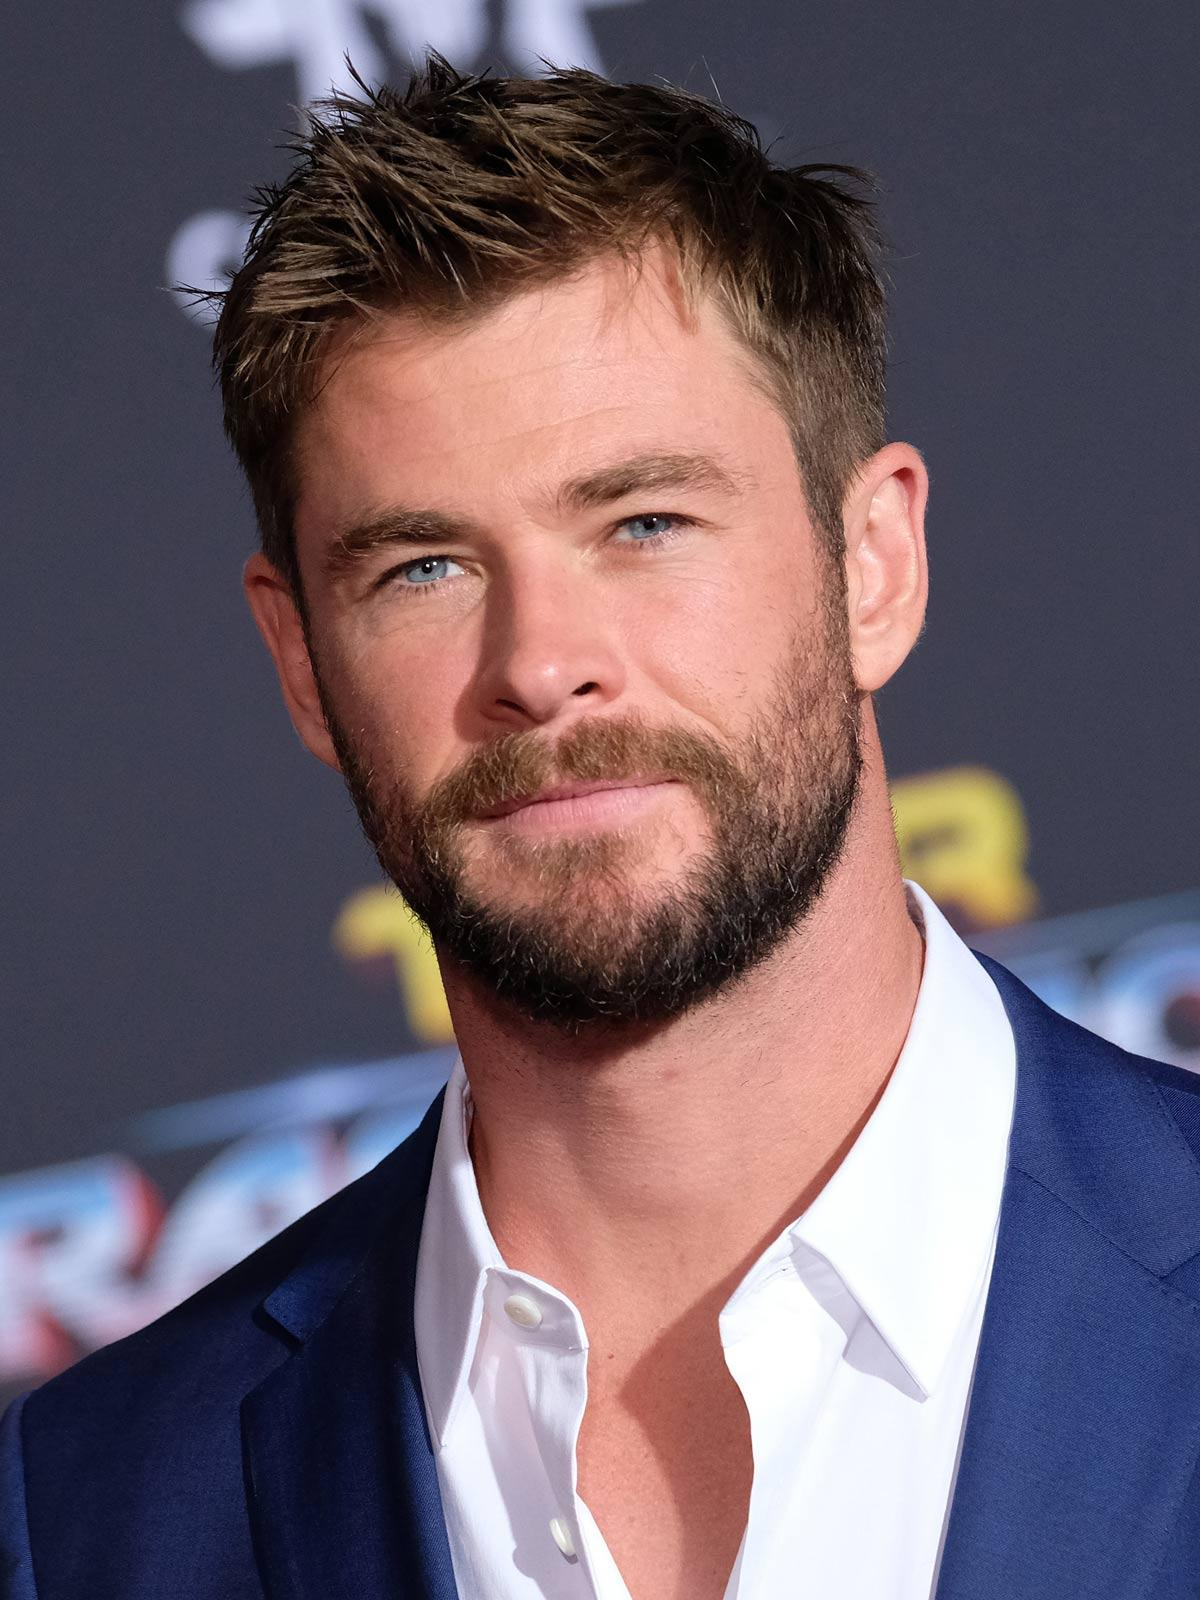 Chris Hemsworth gentleman beard style